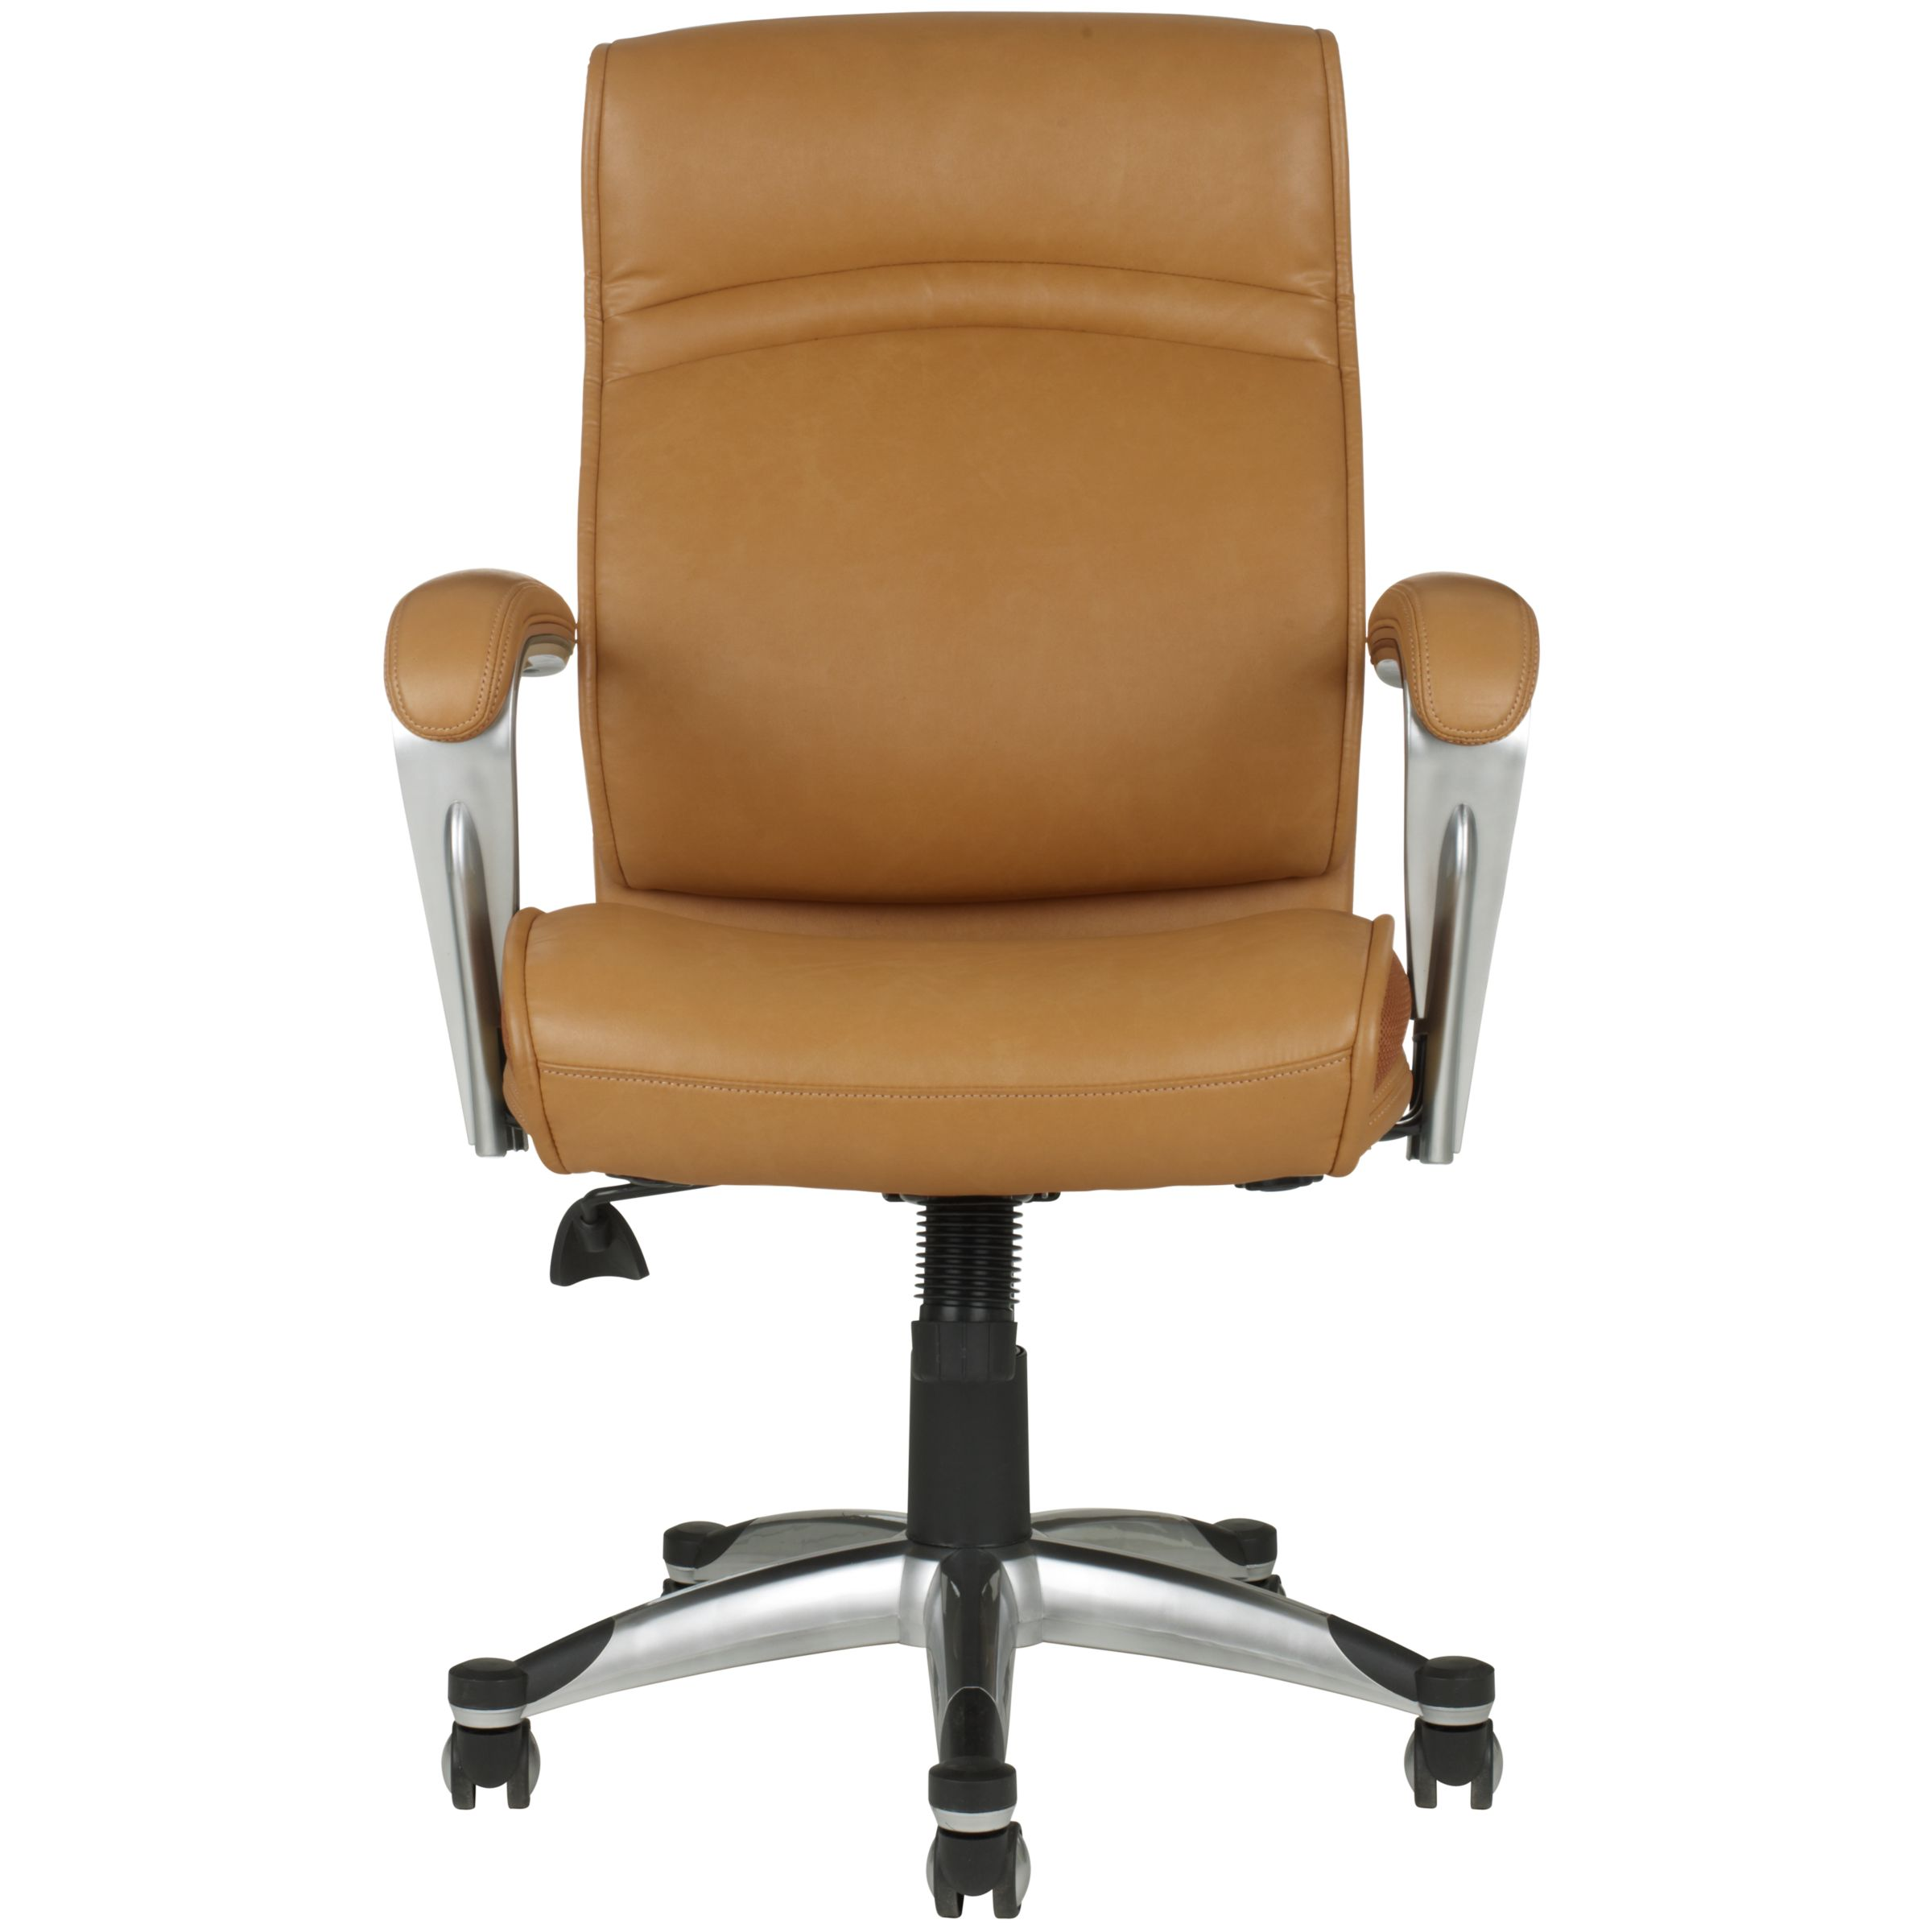 john lewis morgan office chair tan review compare. Black Bedroom Furniture Sets. Home Design Ideas